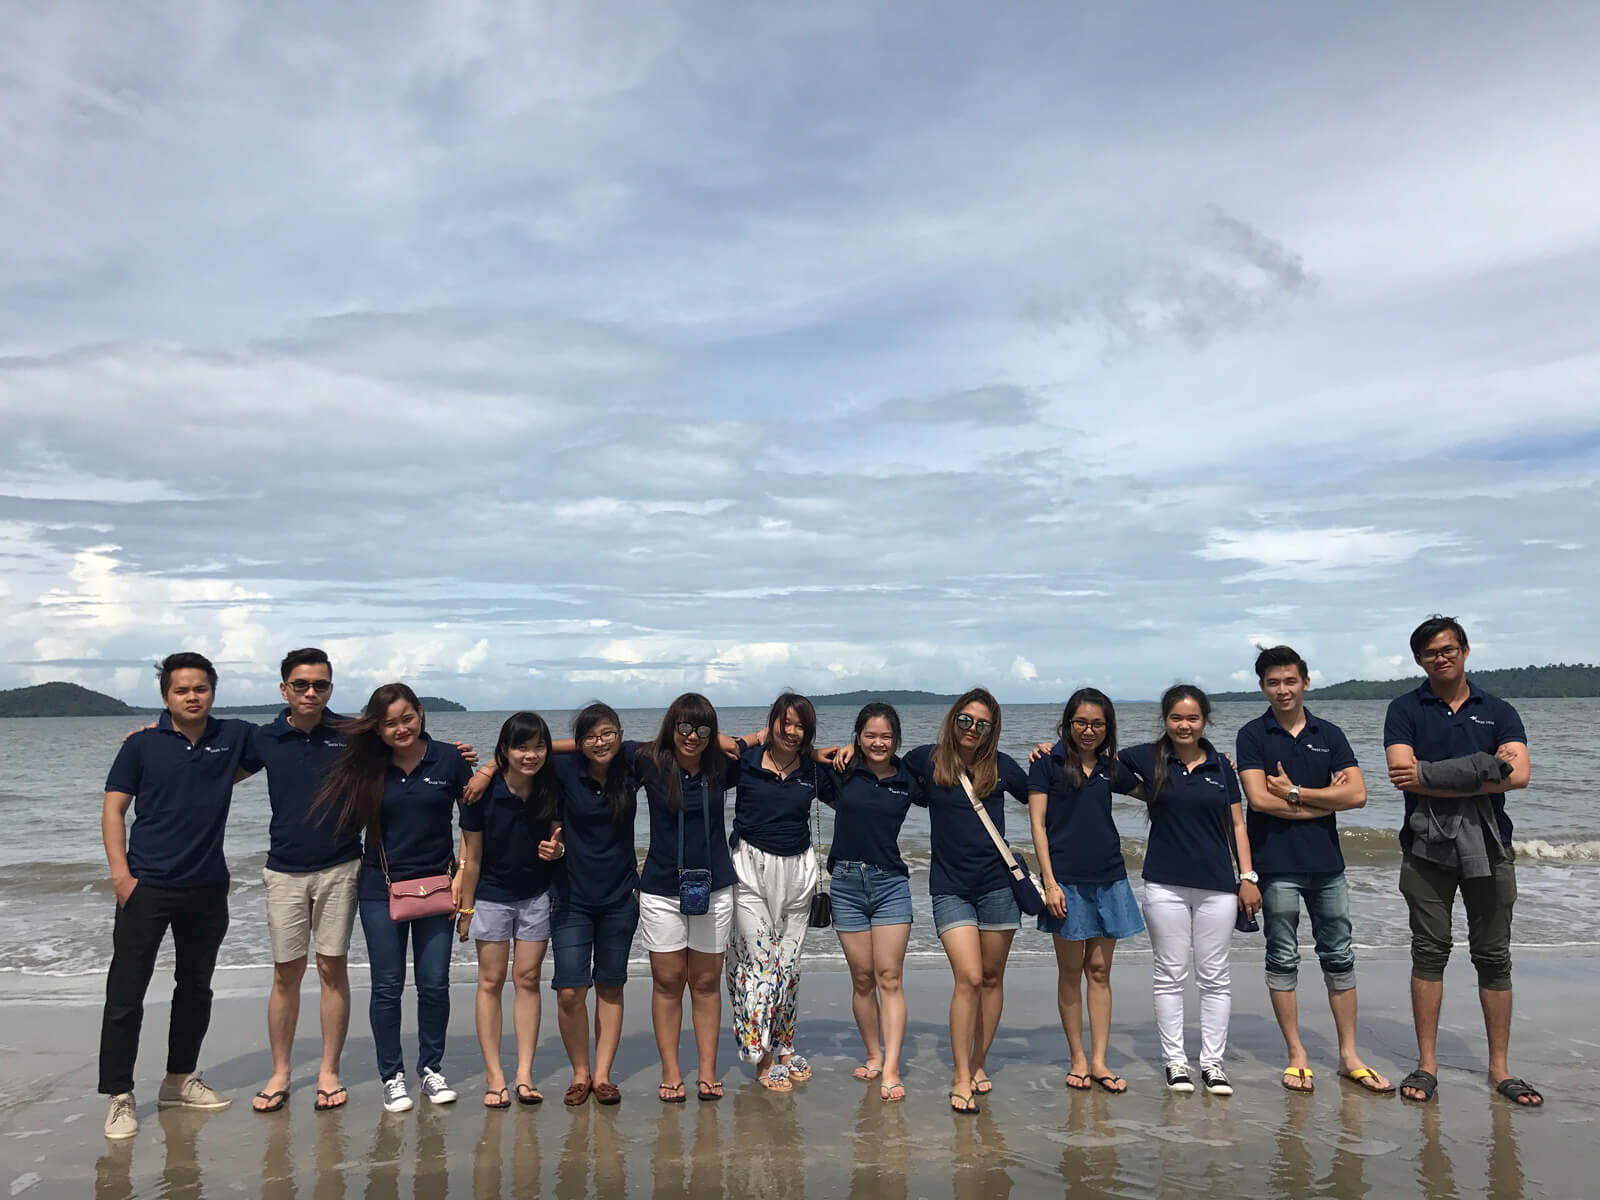 2017 Annual Trip to Sihanoukville